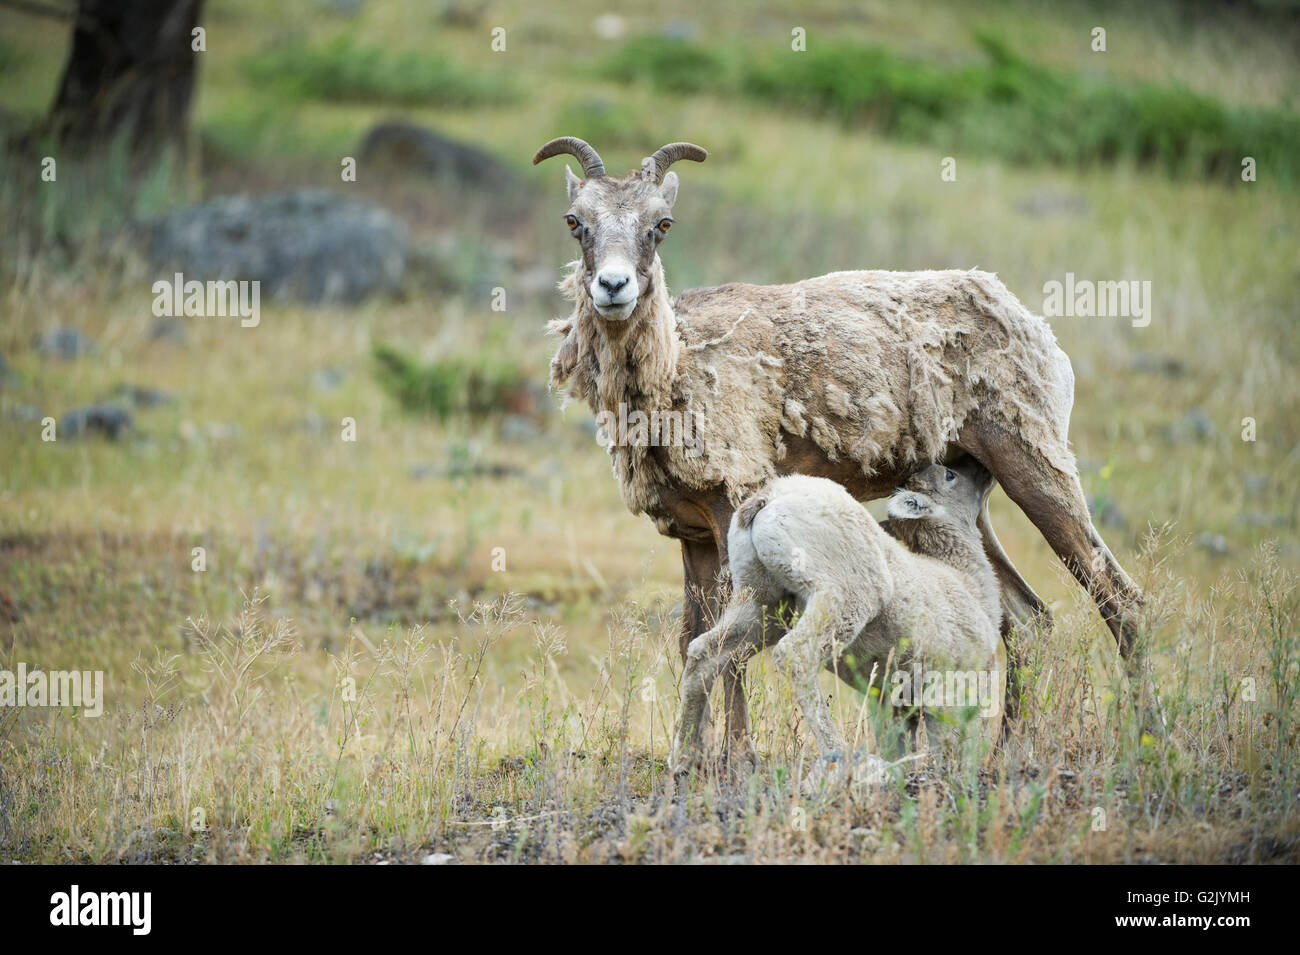 Female, Ewe, Lamb, Bighorn Sheep, Ovis canadensis, Rocky Mountains, Alberta, Canada - Stock Image